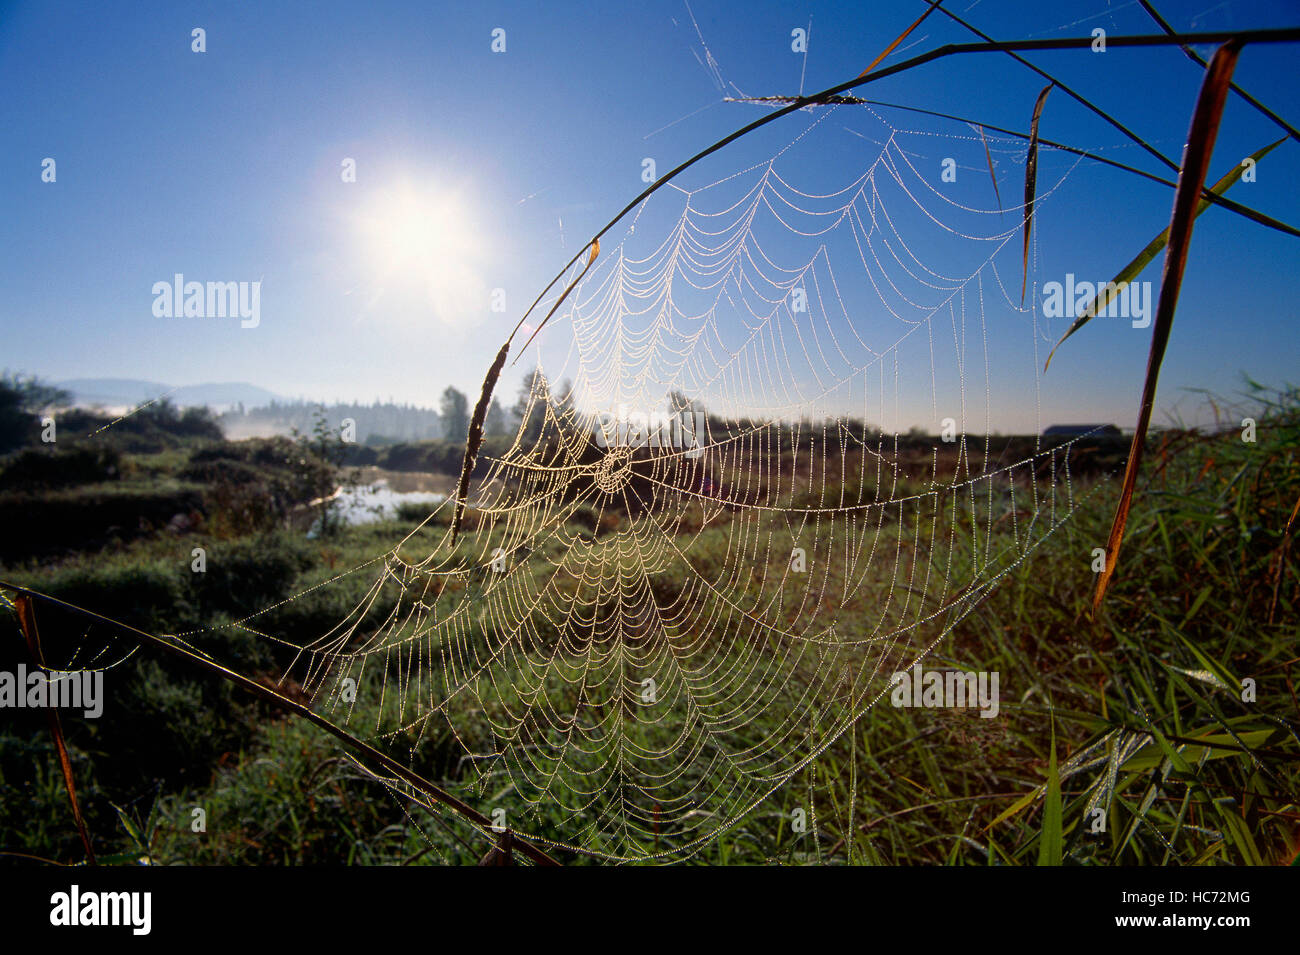 Spider Web covered in Early Morning Dew in a Rural Landscape - Stock Image